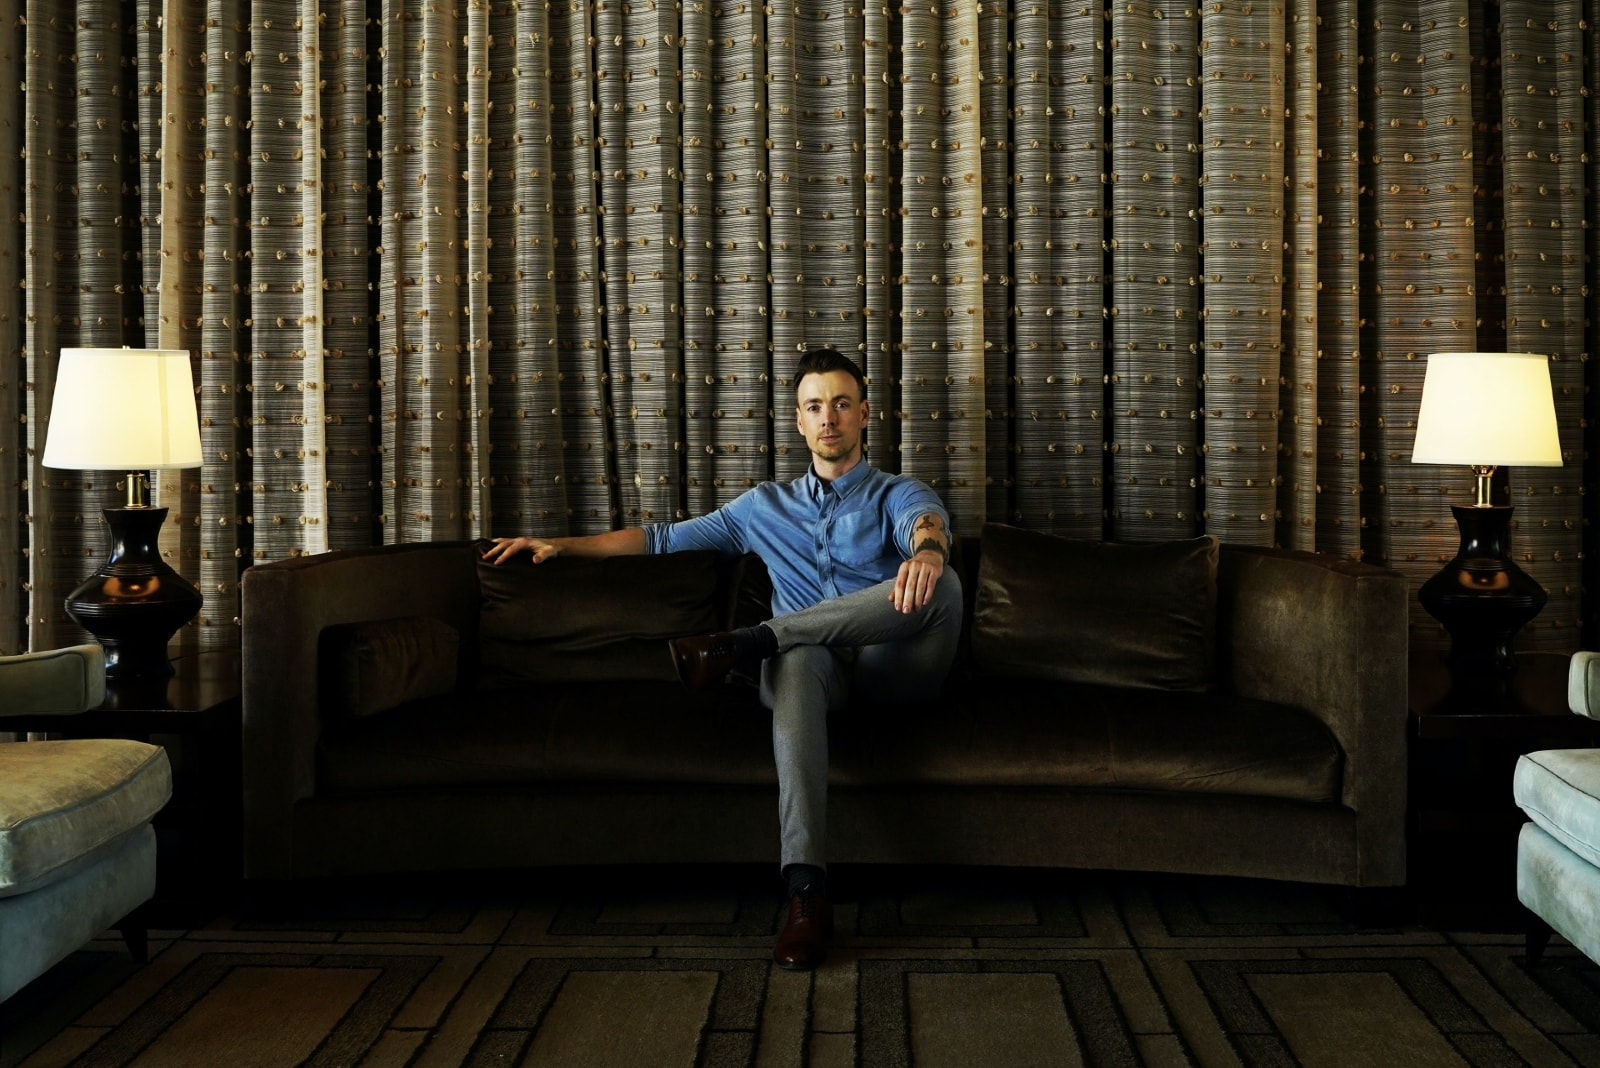 pensive man in denim shirt sitting on couch